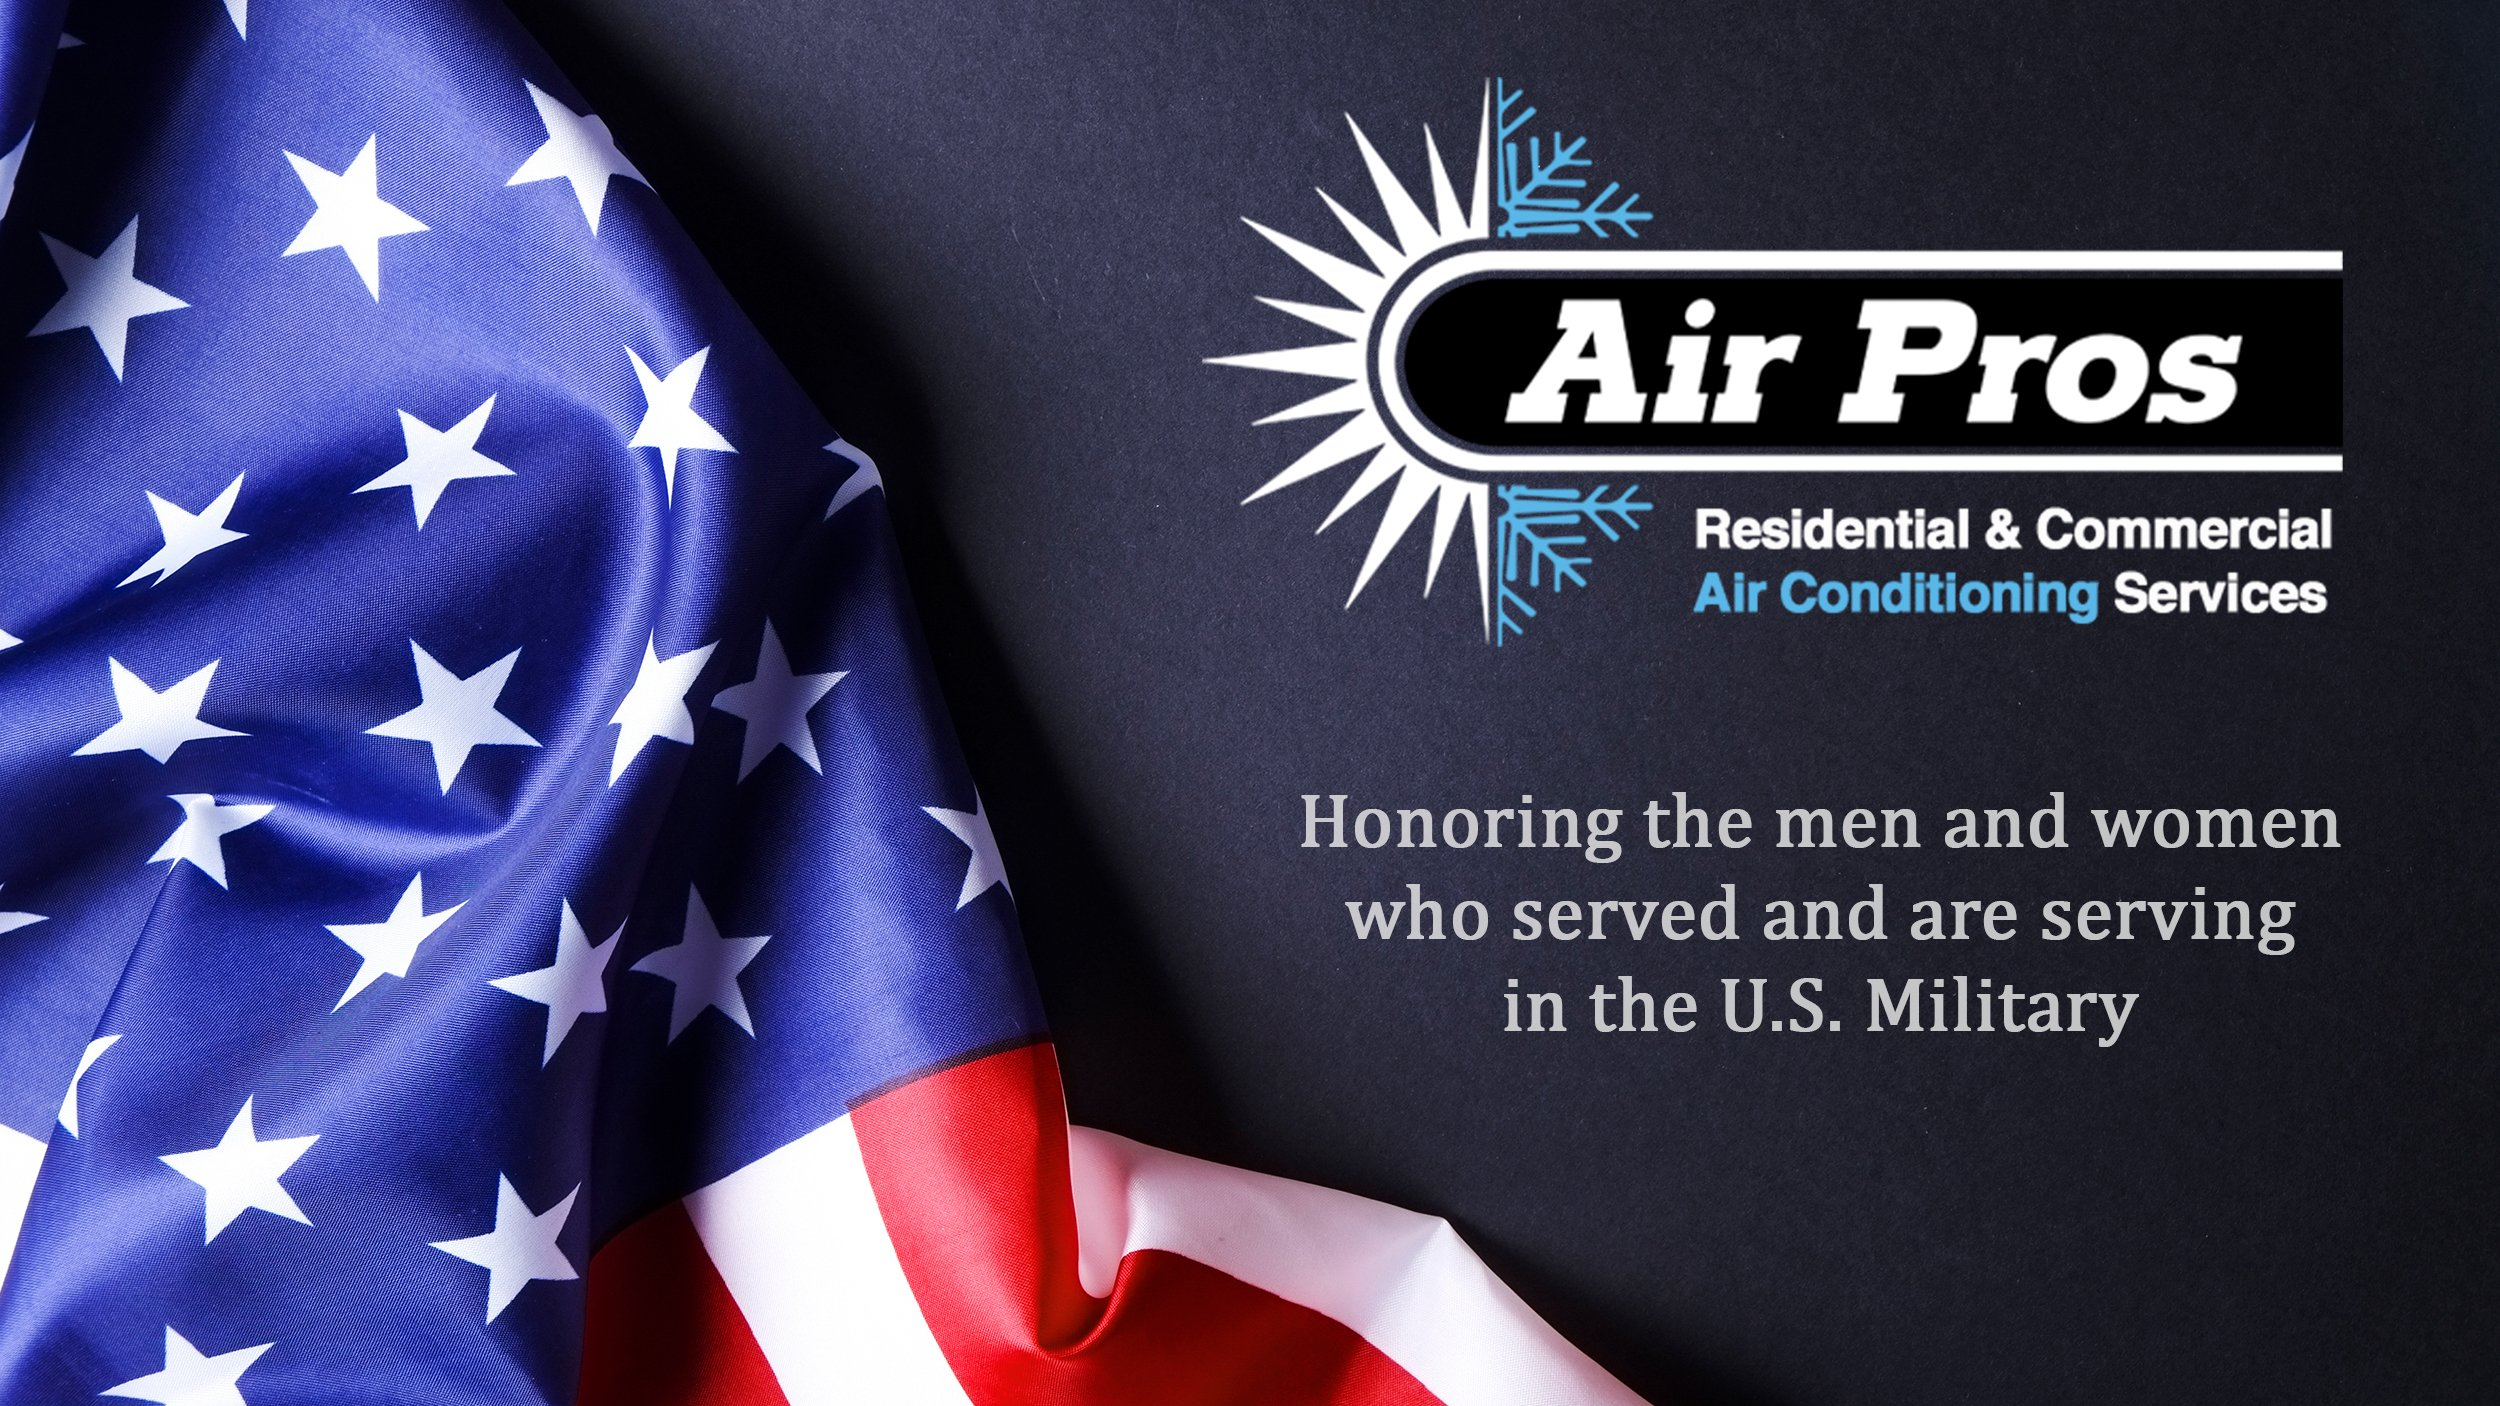 air-pros-vets-furnace-giveaway-seeking-nominations